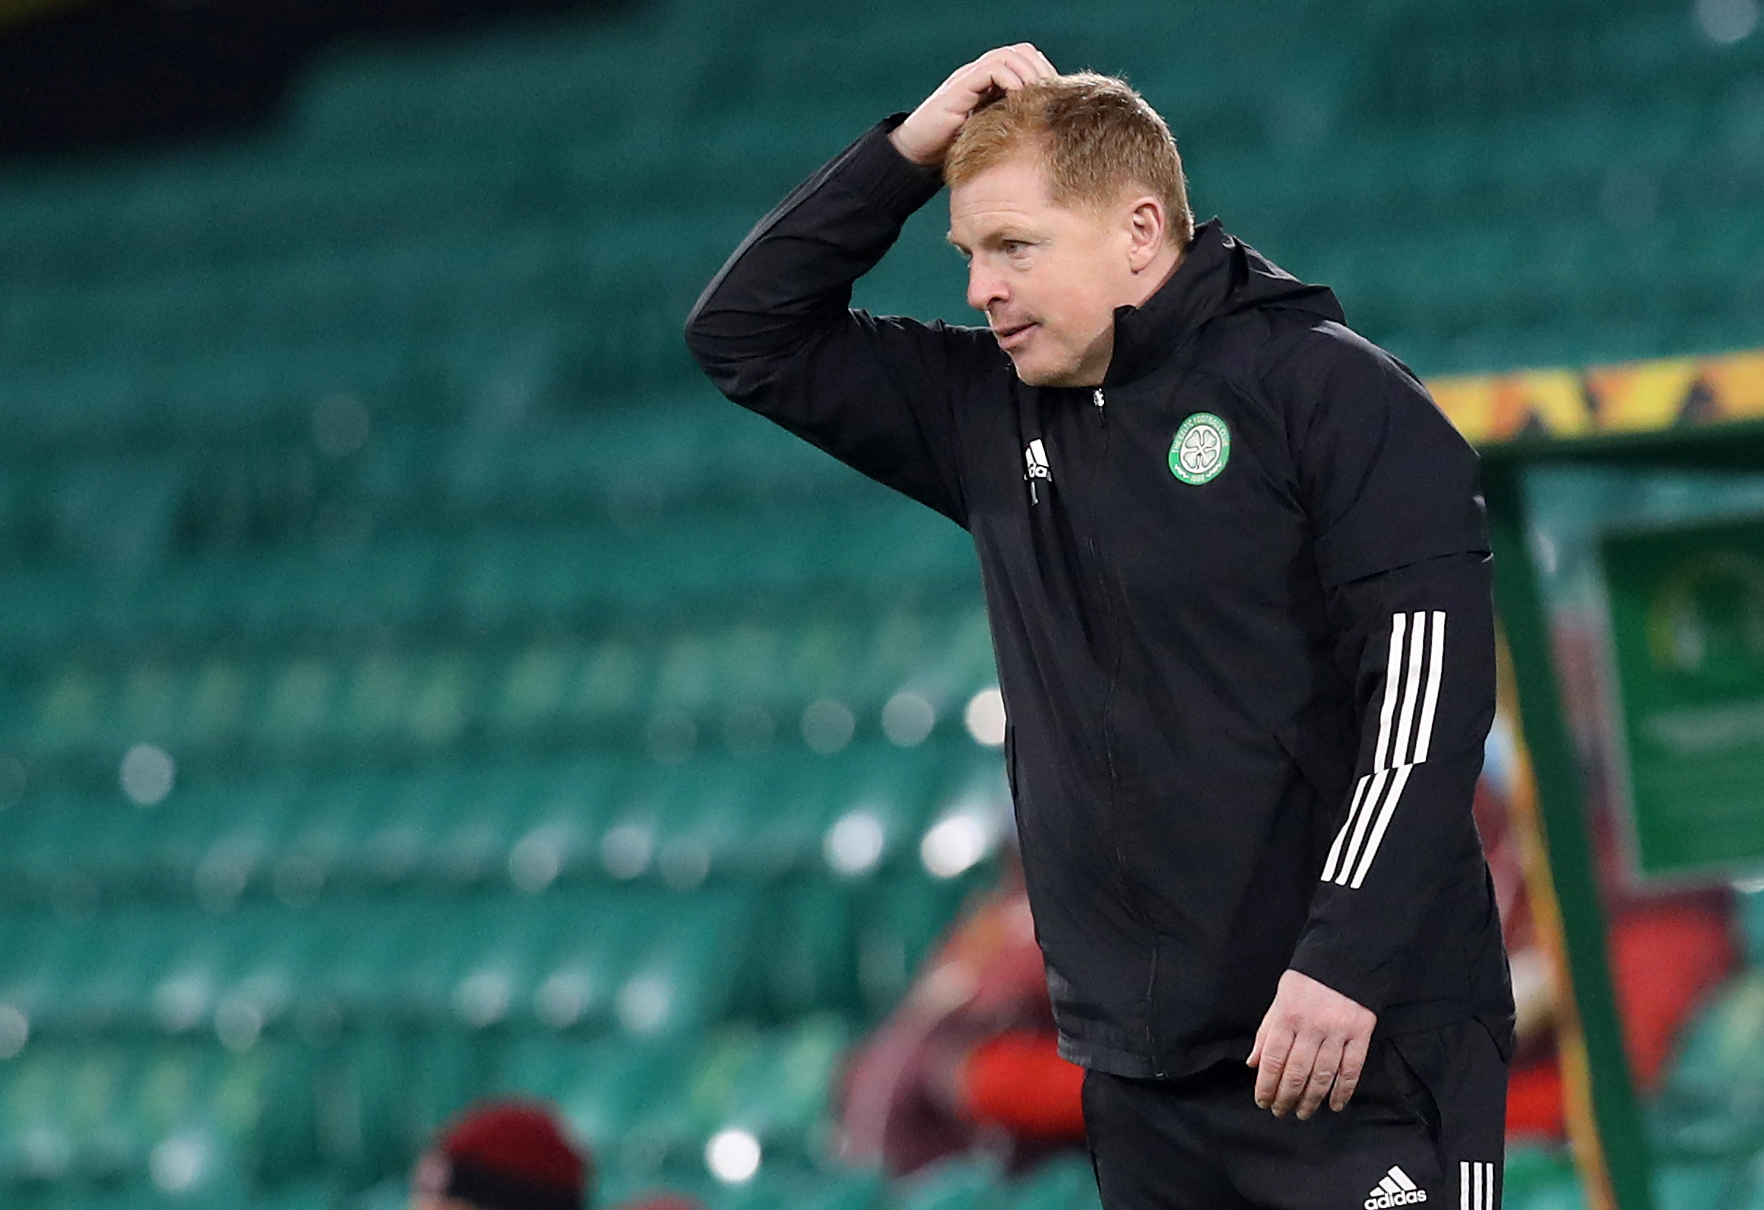 It was yet another awful night for Neil Lennon